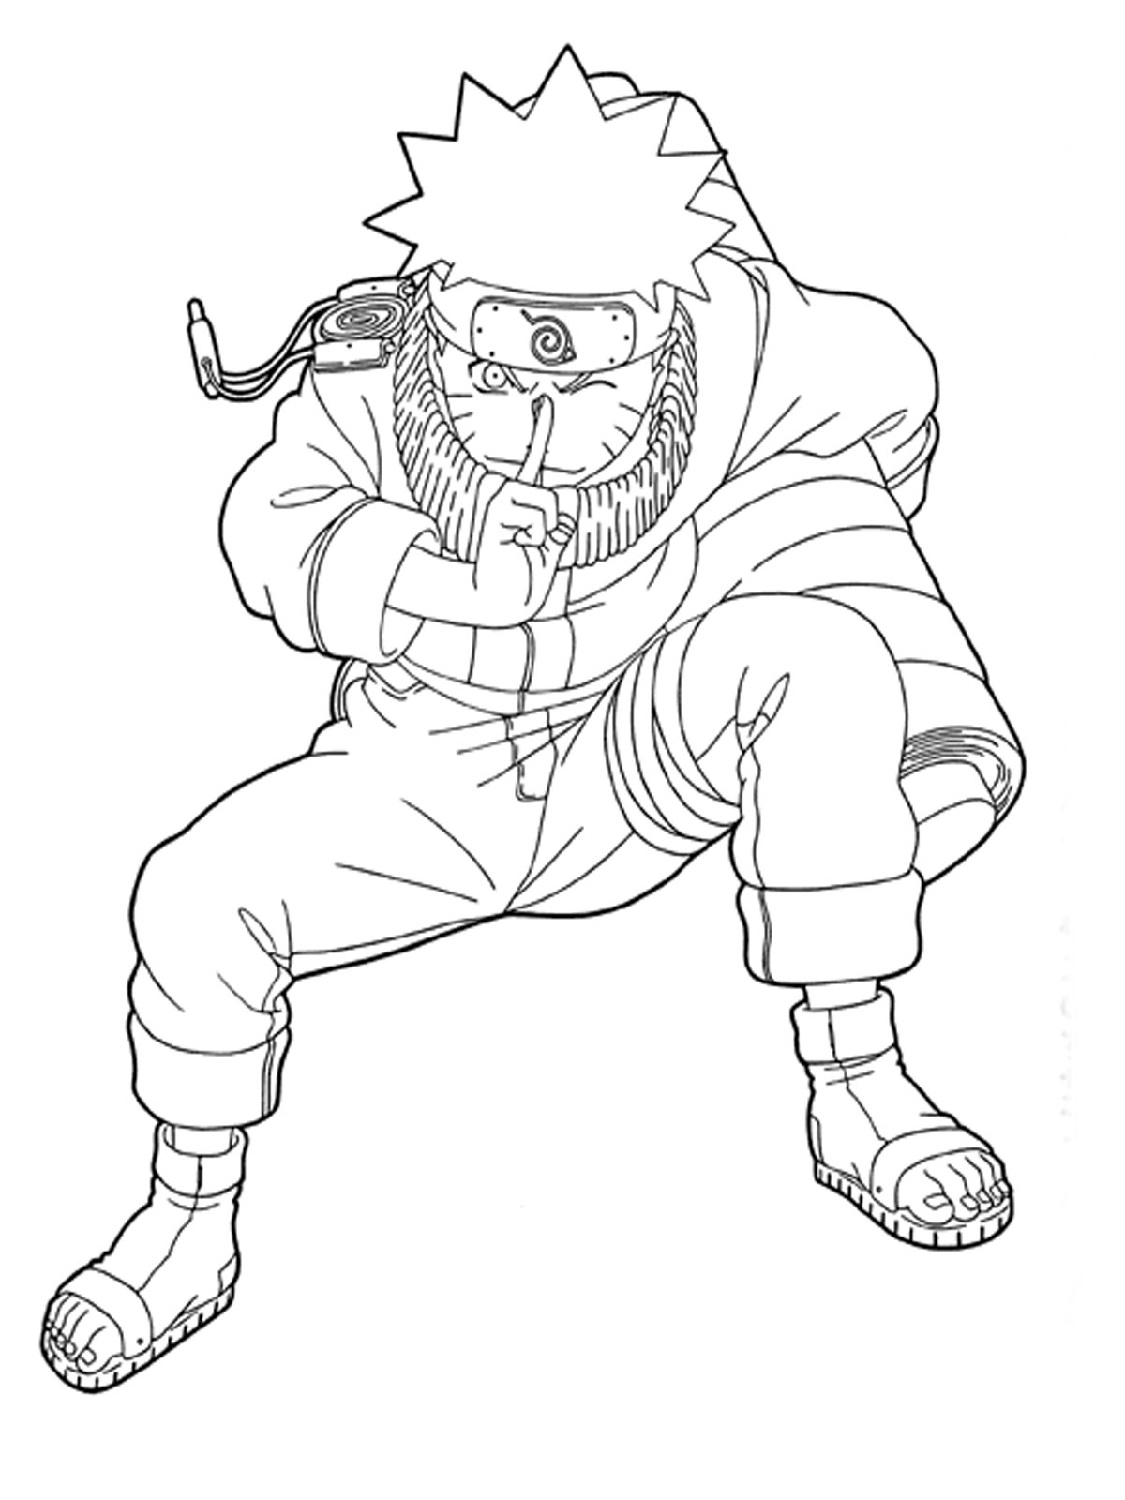 Naruto Coloring Pages Uzumaki Naruto